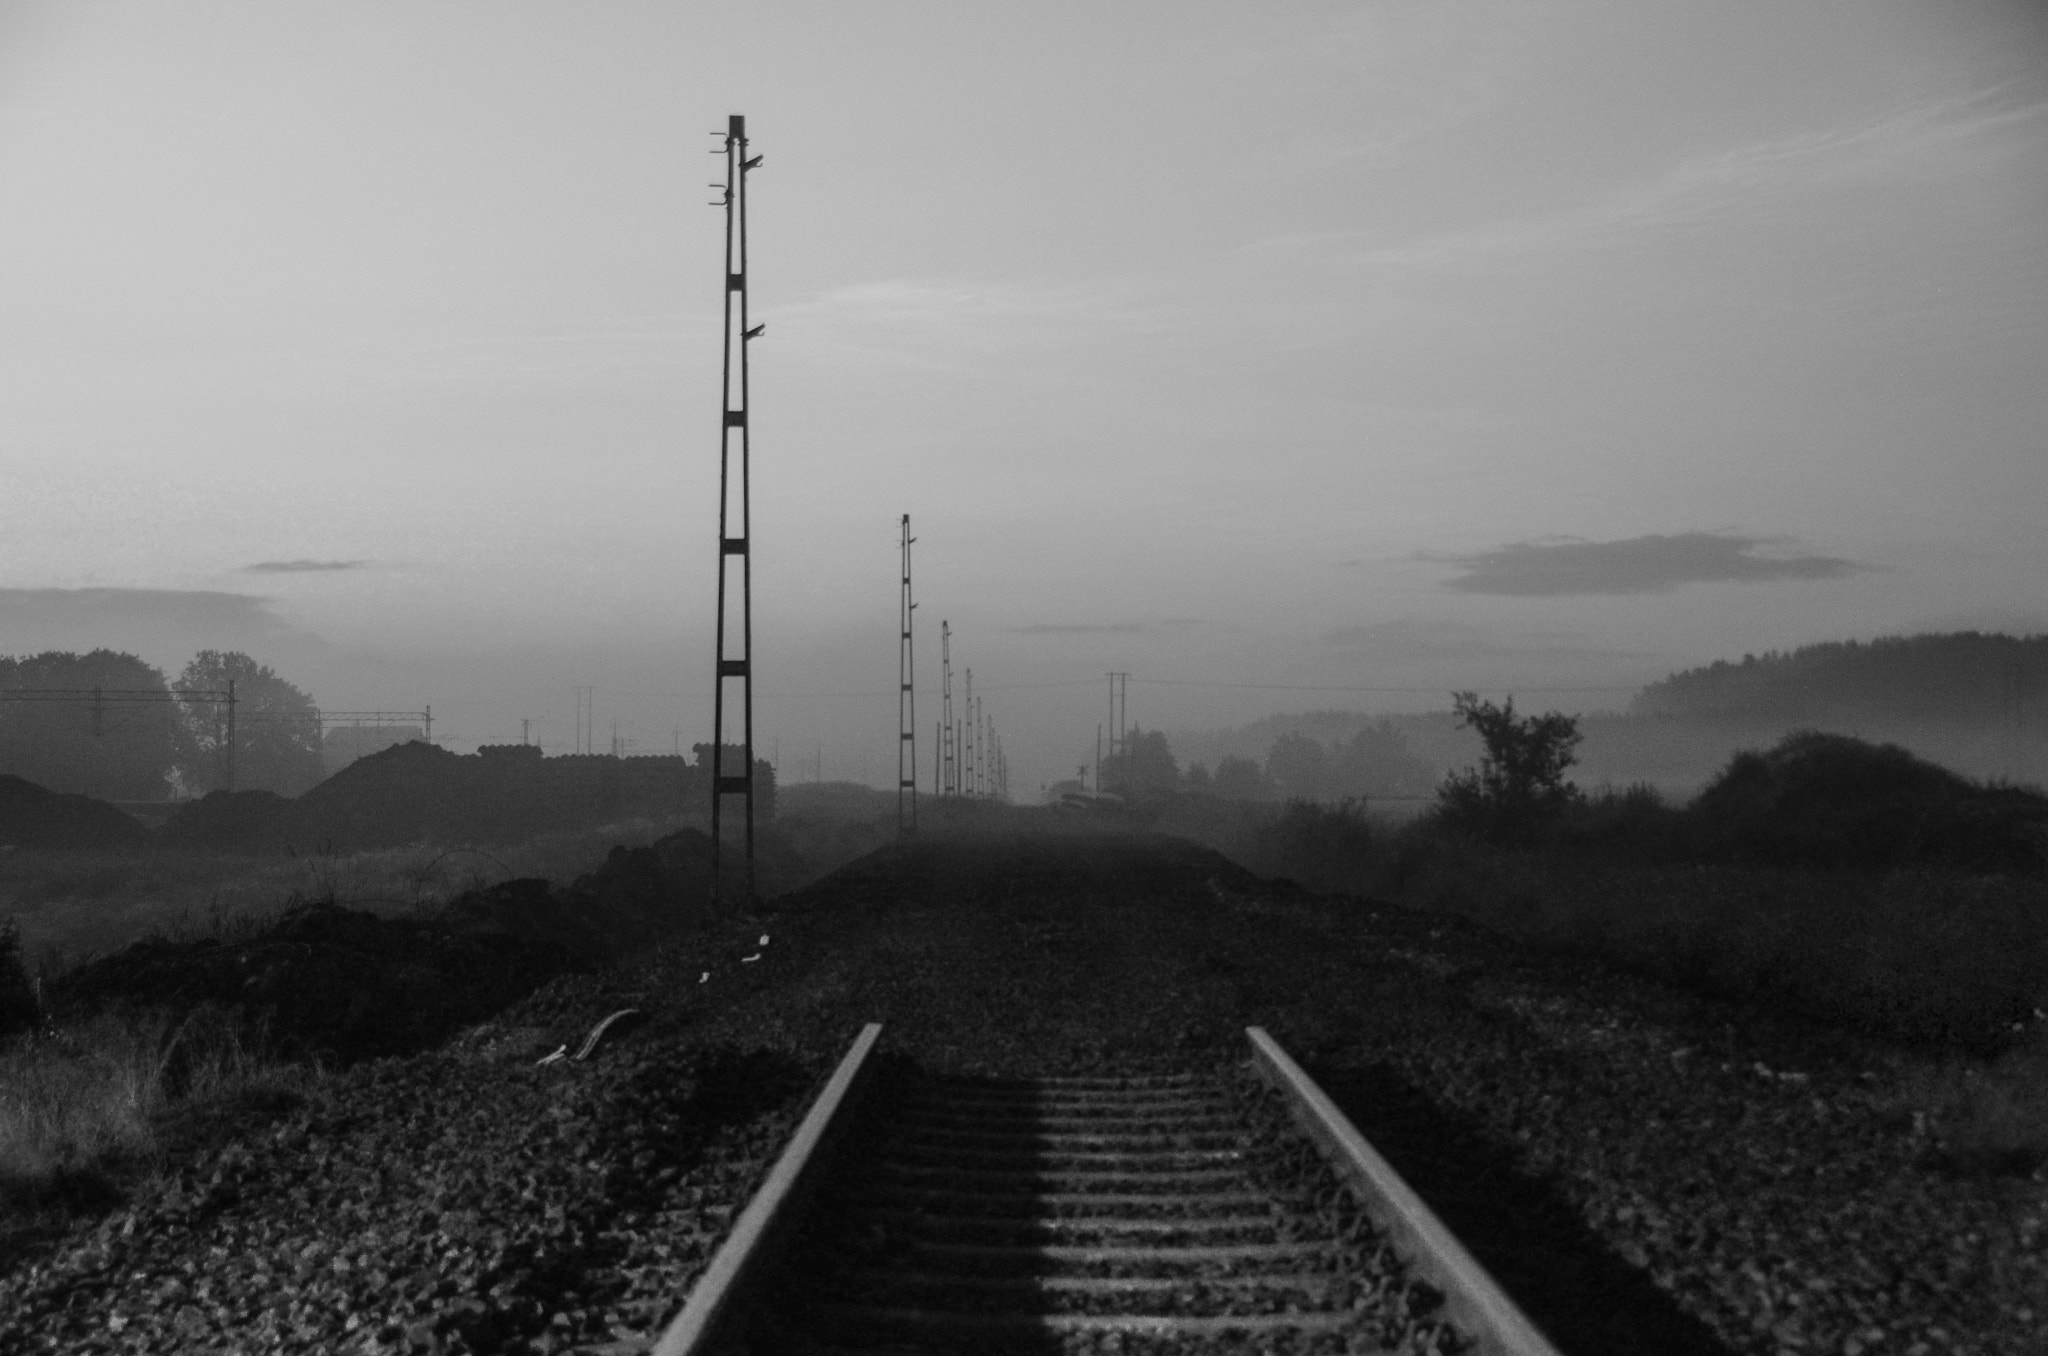 Photograph End of the line by Gunnar Sommerfeldt on 500px